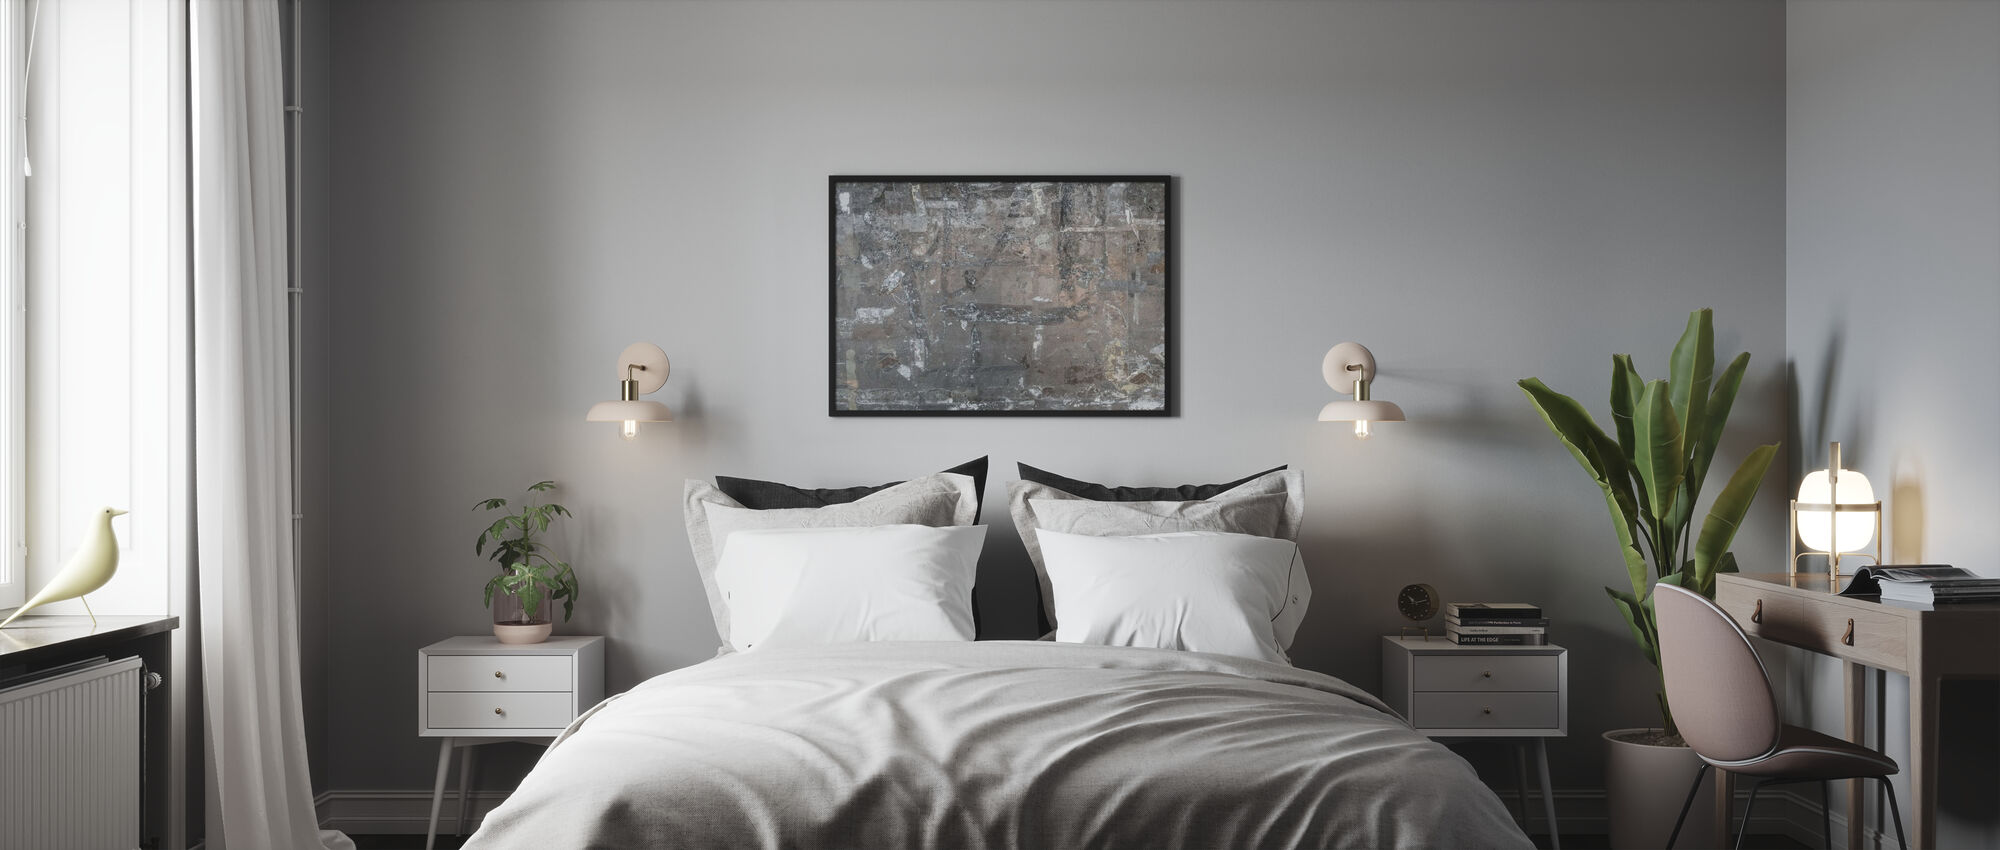 Ripped Poster Wall - Framed print - Bedroom